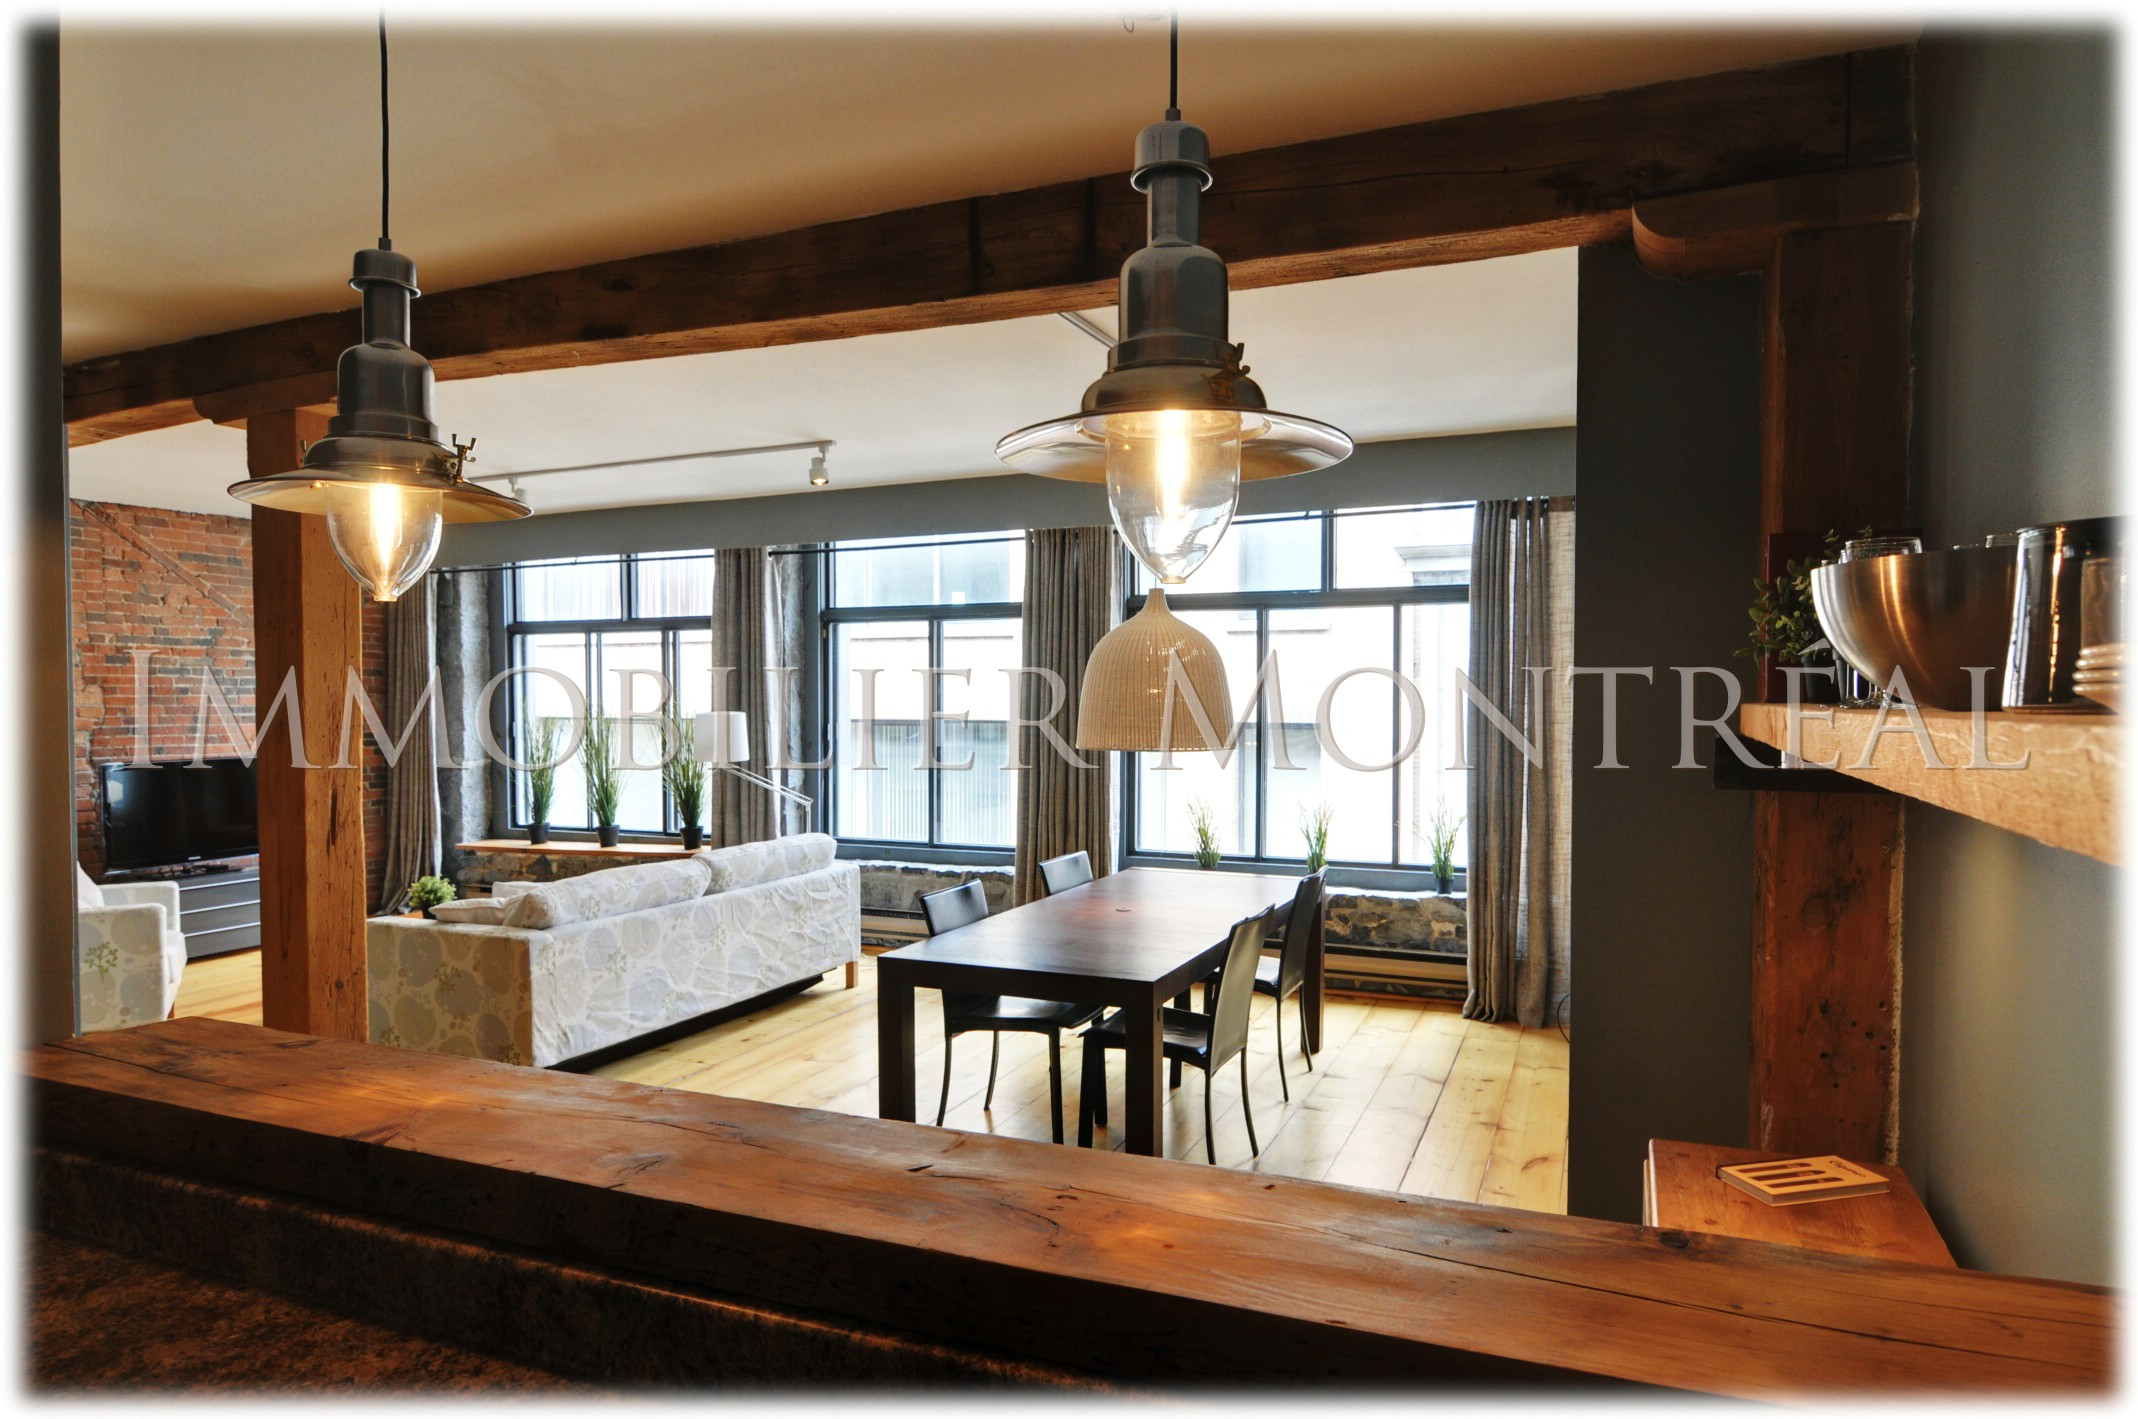 Loft mia location appartements meubl s montreal for Entrepot de meuble montreal